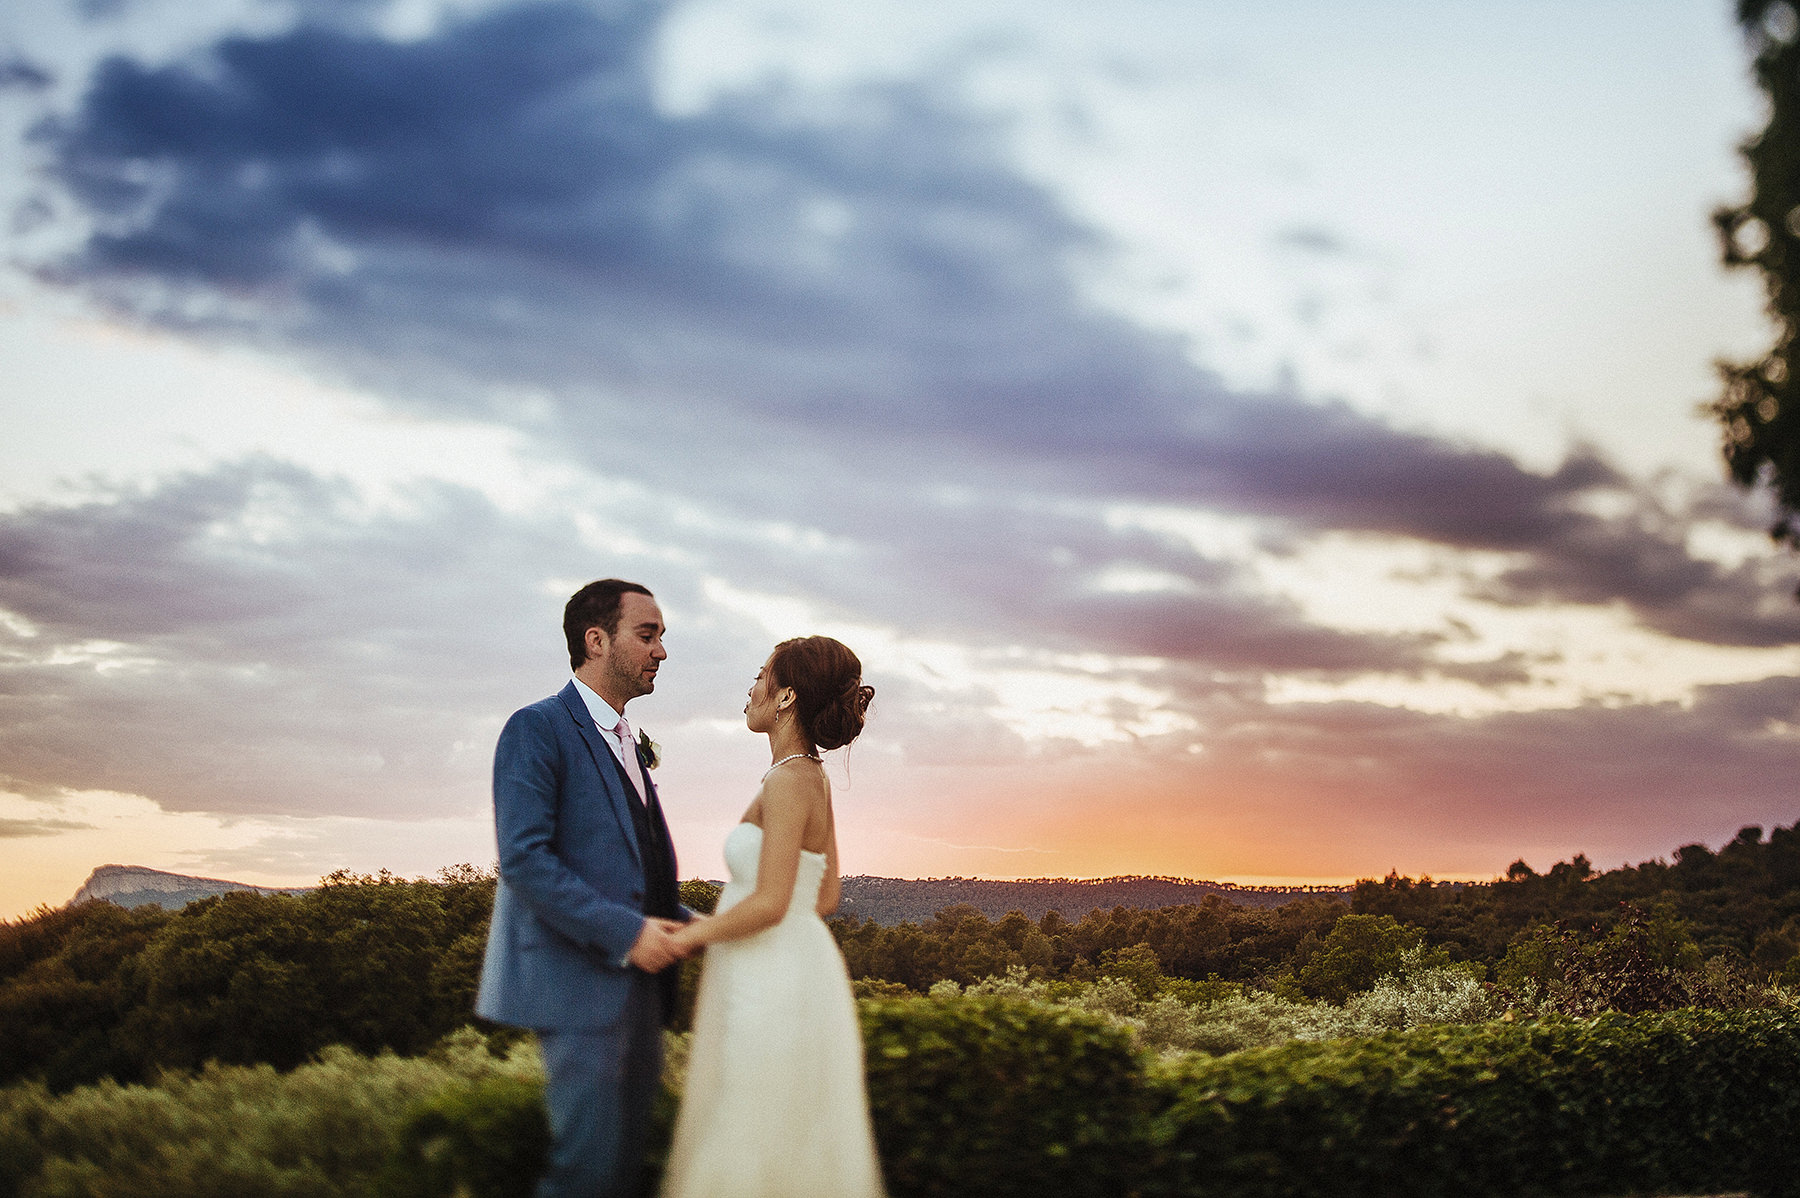 Mas Saint Germain Wedding photographer